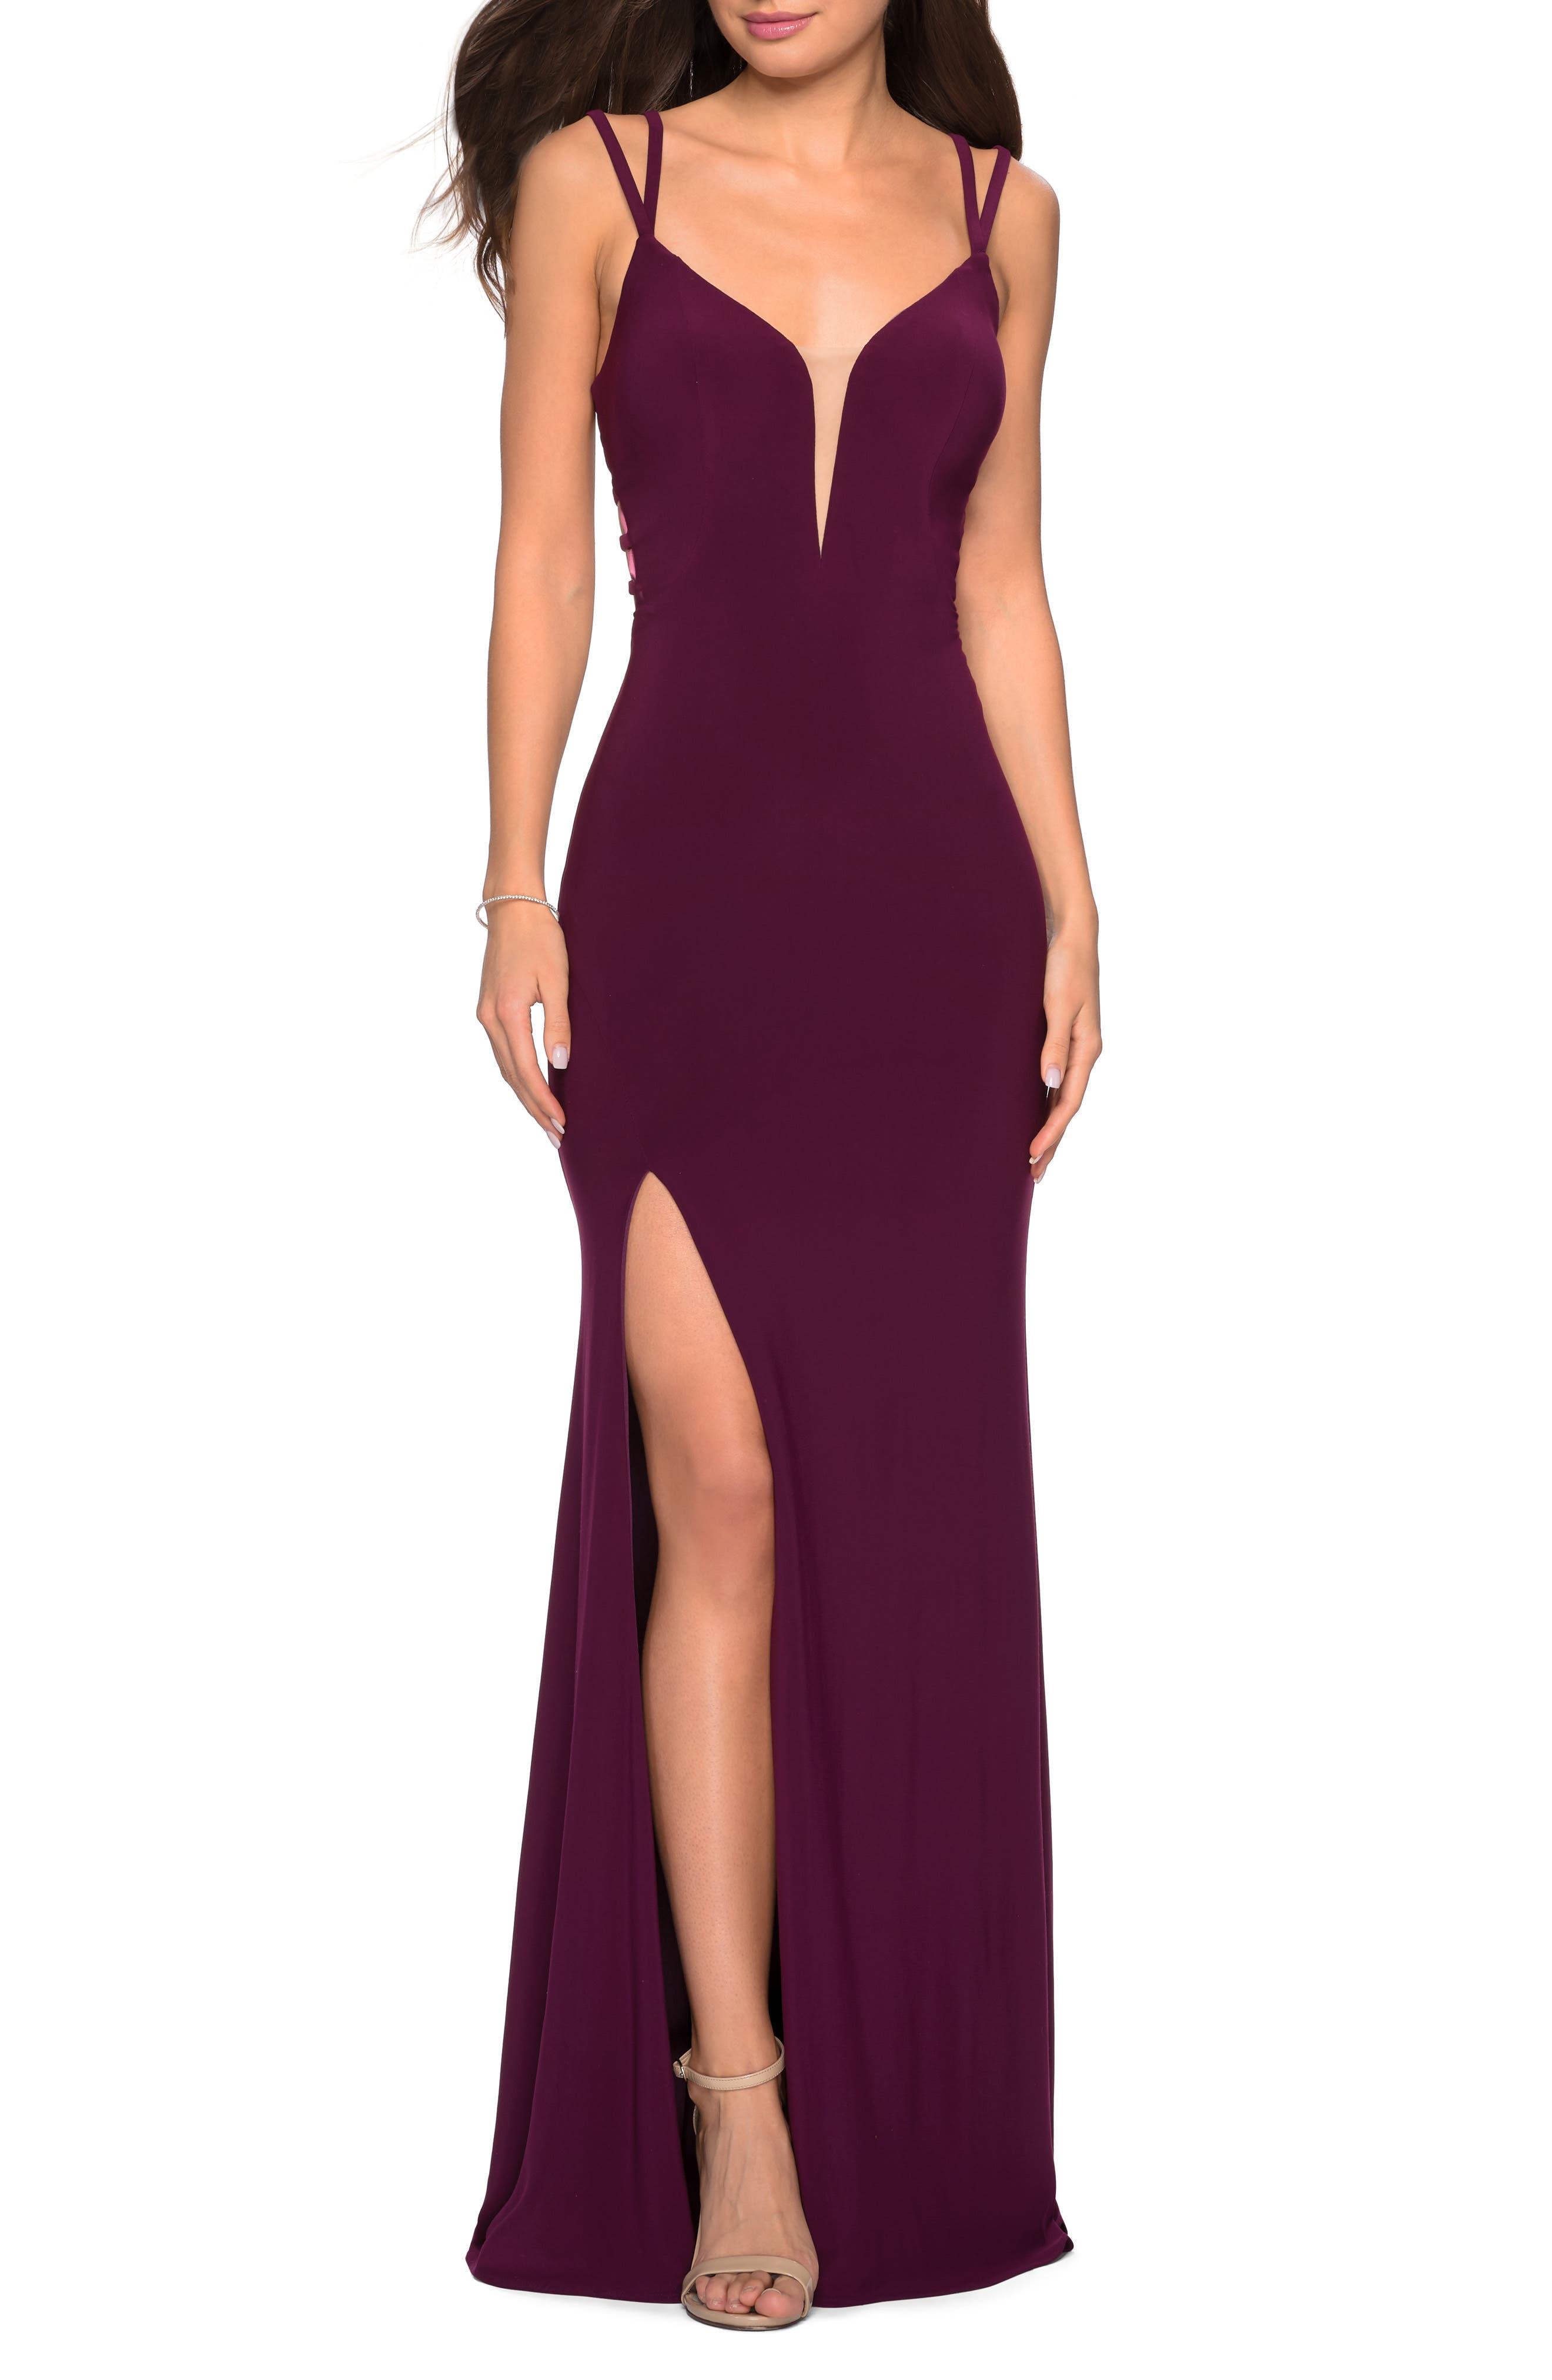 A rich jersey gown that shows your skin and sculpts your figure features a deeply plunging neckline, a high front slit and a web of intrigue at the dipped back. Style Name: La Femme Strappy Back Jersey Column Gown. Style Number: 5780199 2. Available in stores.